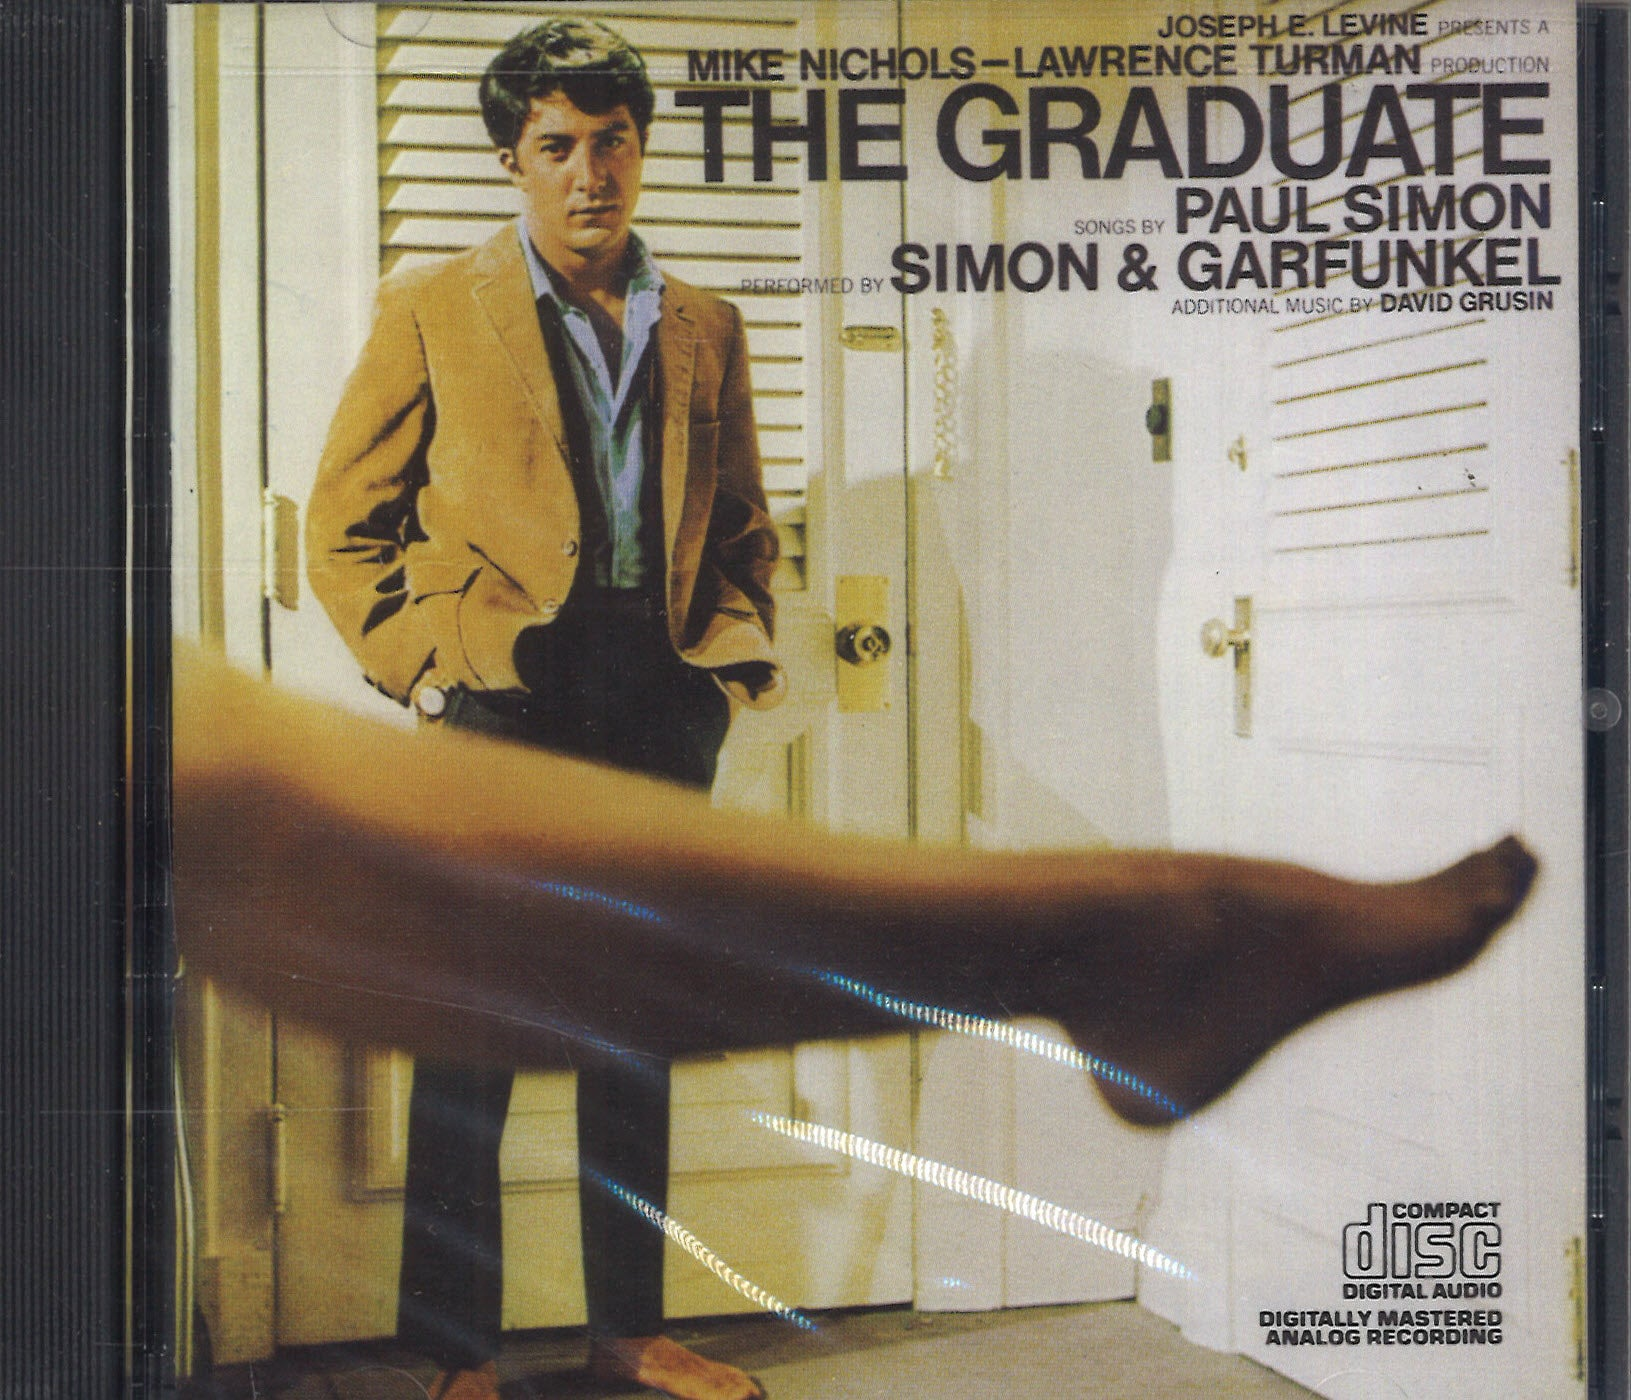 Simon & Garfunkel The Graduate (Music From The Original Motion Picture Soundtrack)